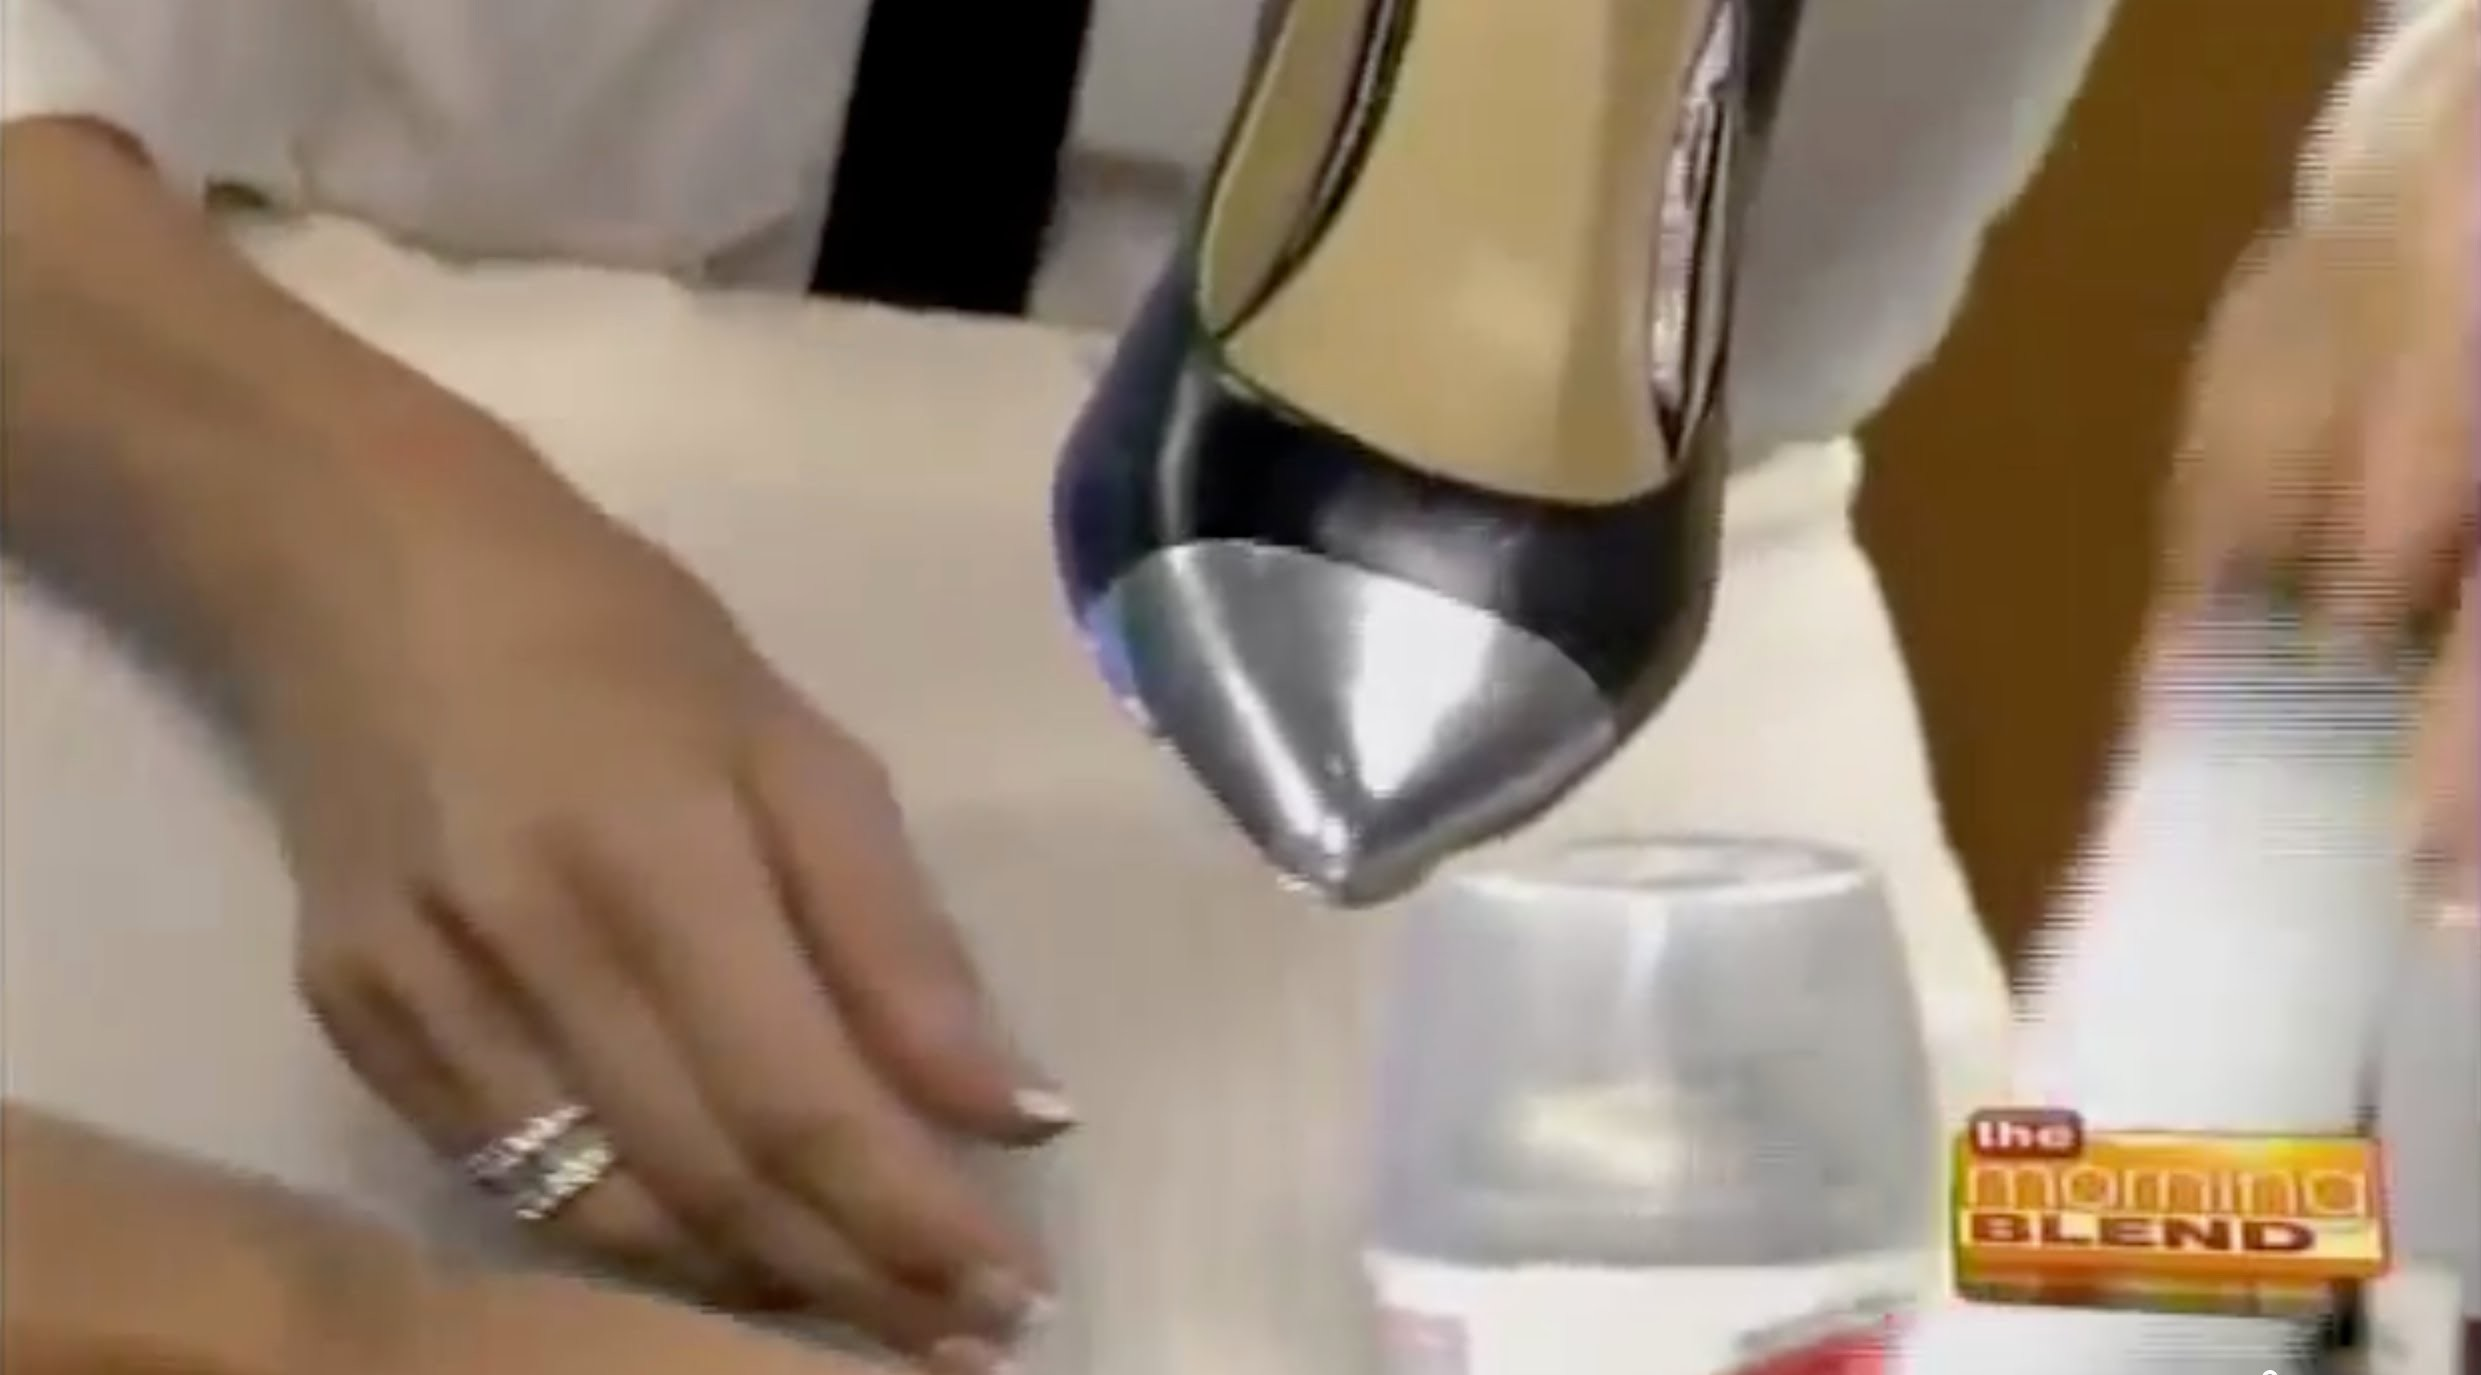 DIY Metallic Cap Toe Shoe Tutorial - How To Make Your Own Designer Shoe! Hottest Pump for Fall 2012!